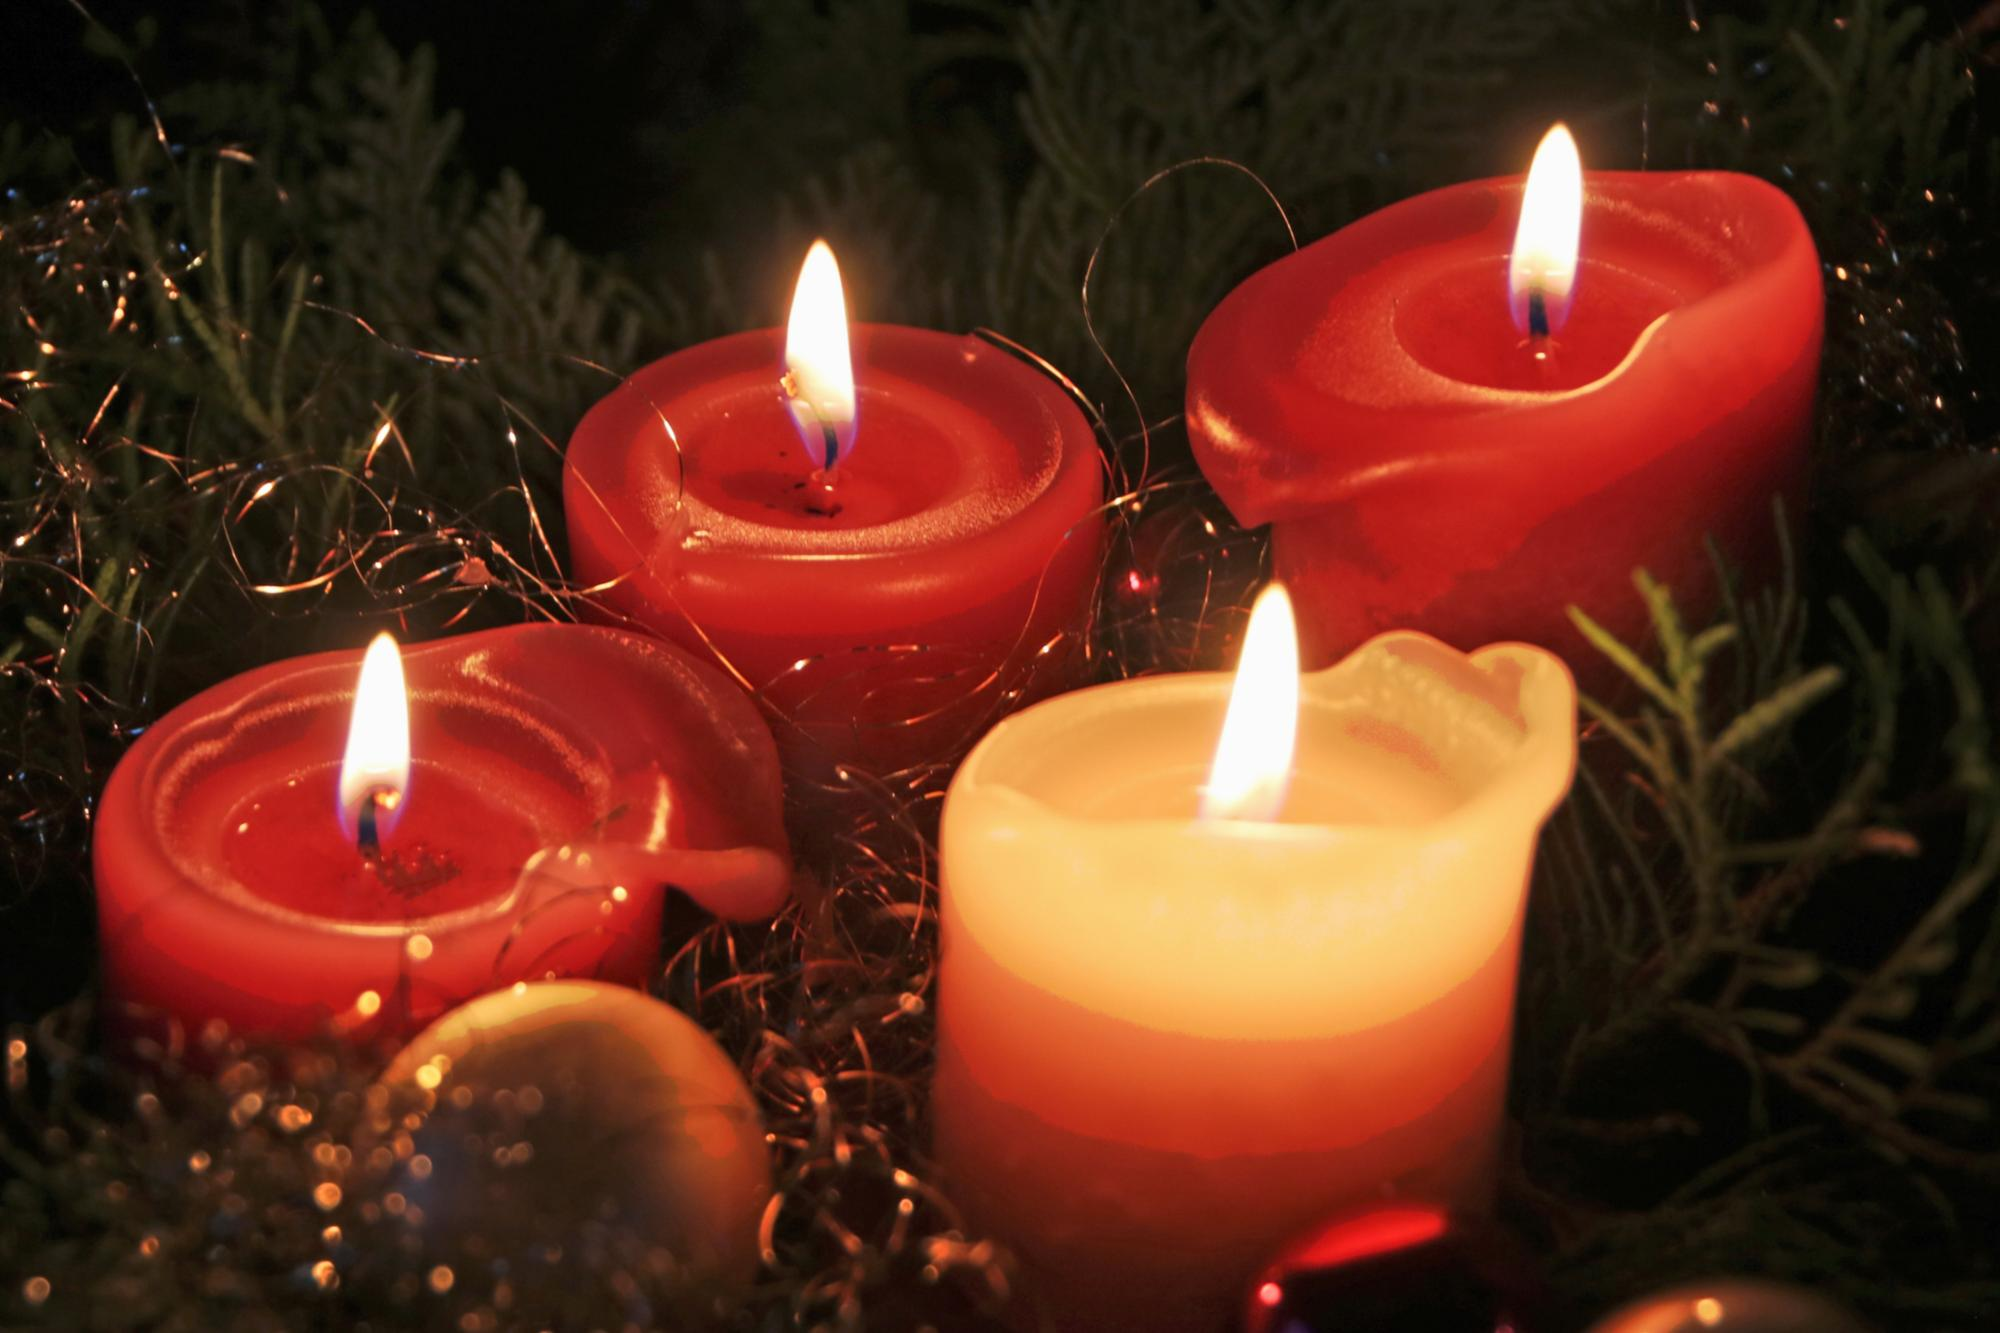 advent_by_Christiane_Raabe_pfarrbriefservice (c) Copyrightfrei